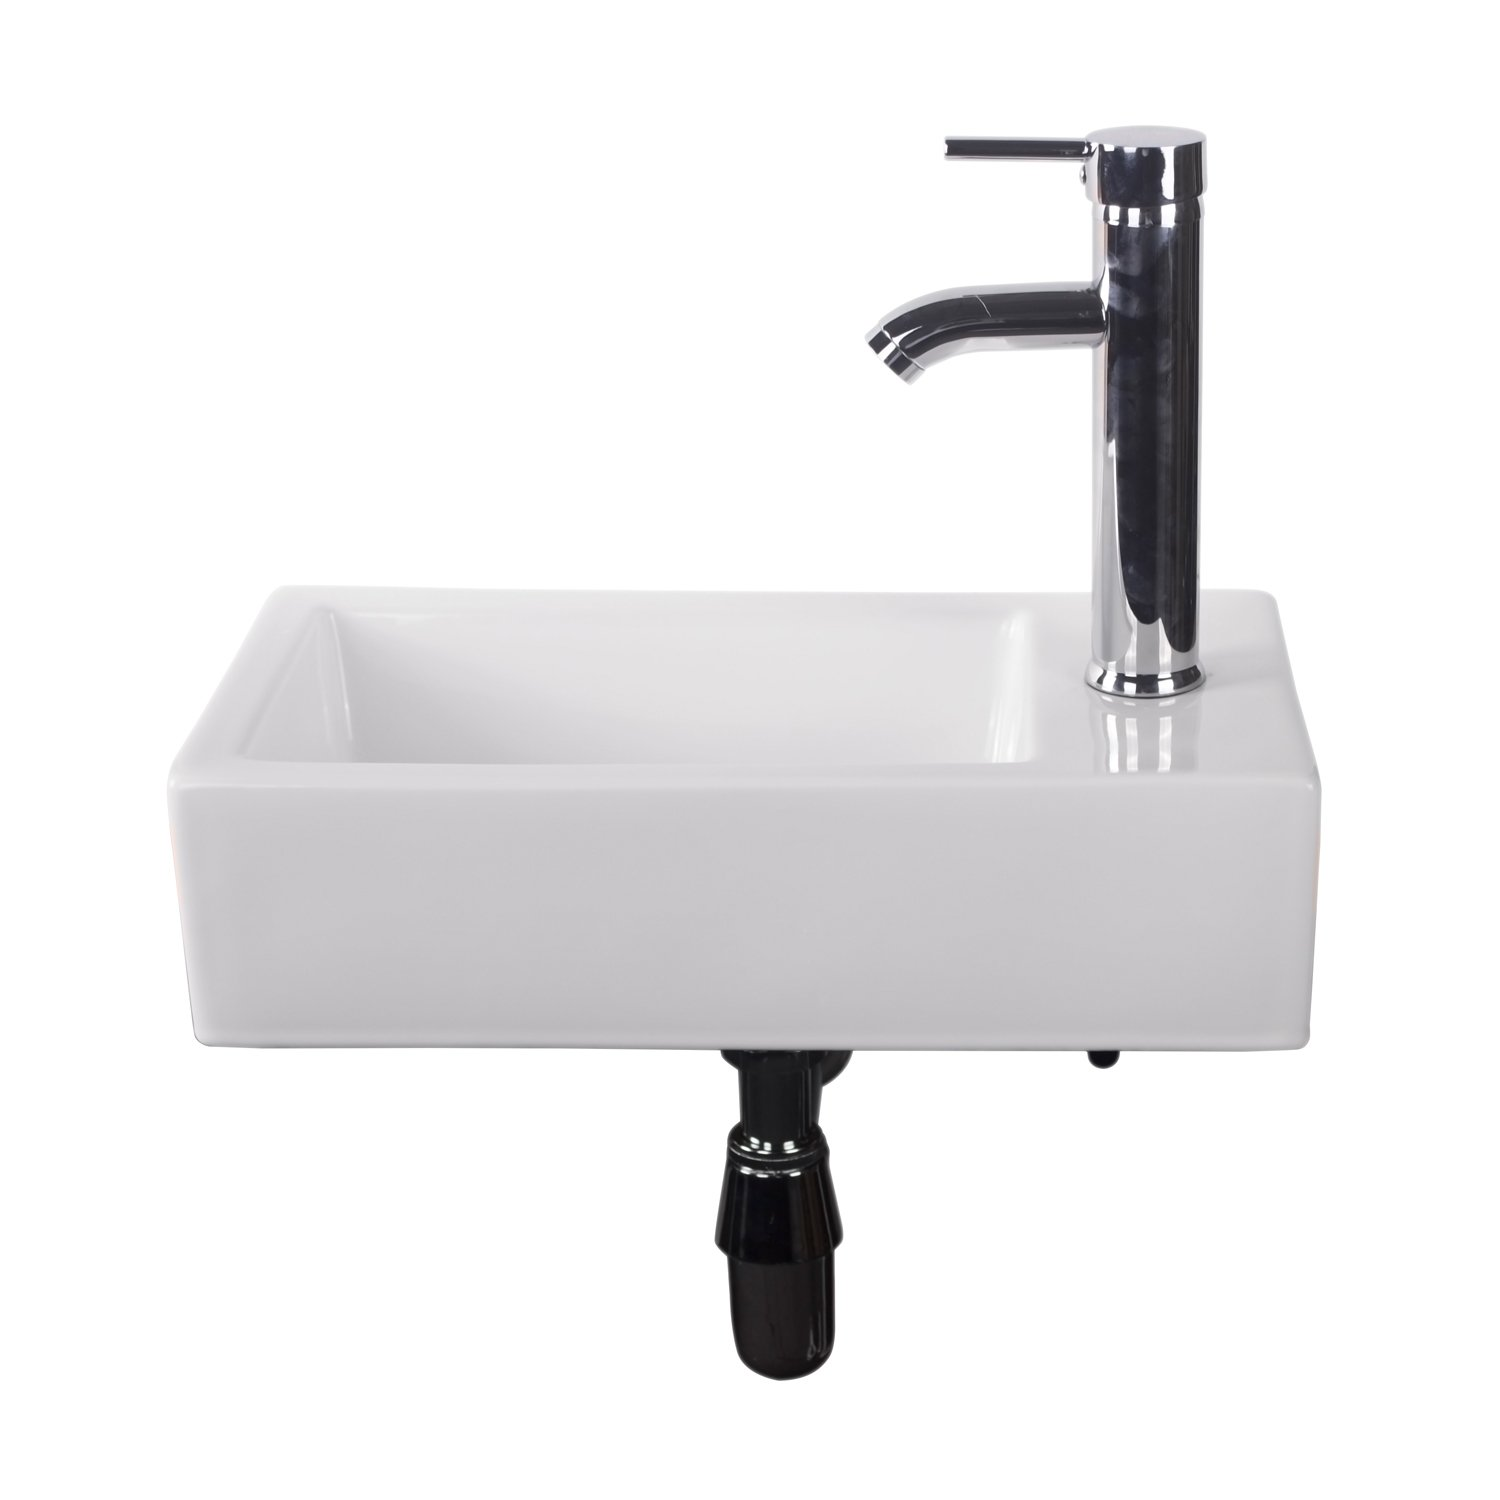 BATHJOY Bathroom Rectangle Wall Mount White Porcelain Ceramic Vessel Sink with Chrome Faucet Combo